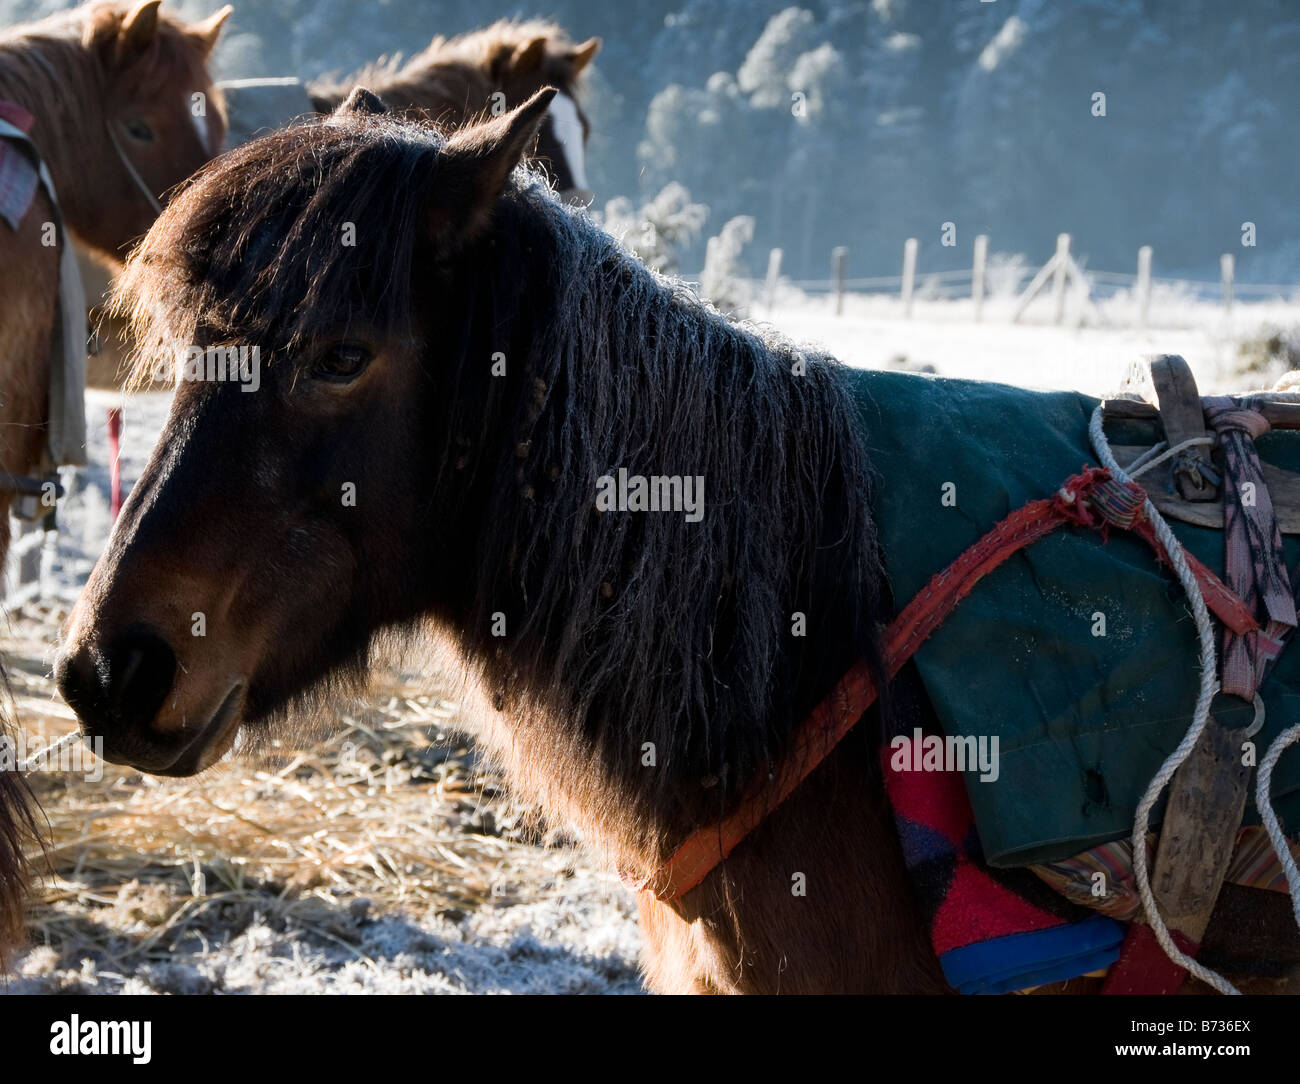 Trekking horse in freezing conditions at sunrise in Bhutan - Stock Image